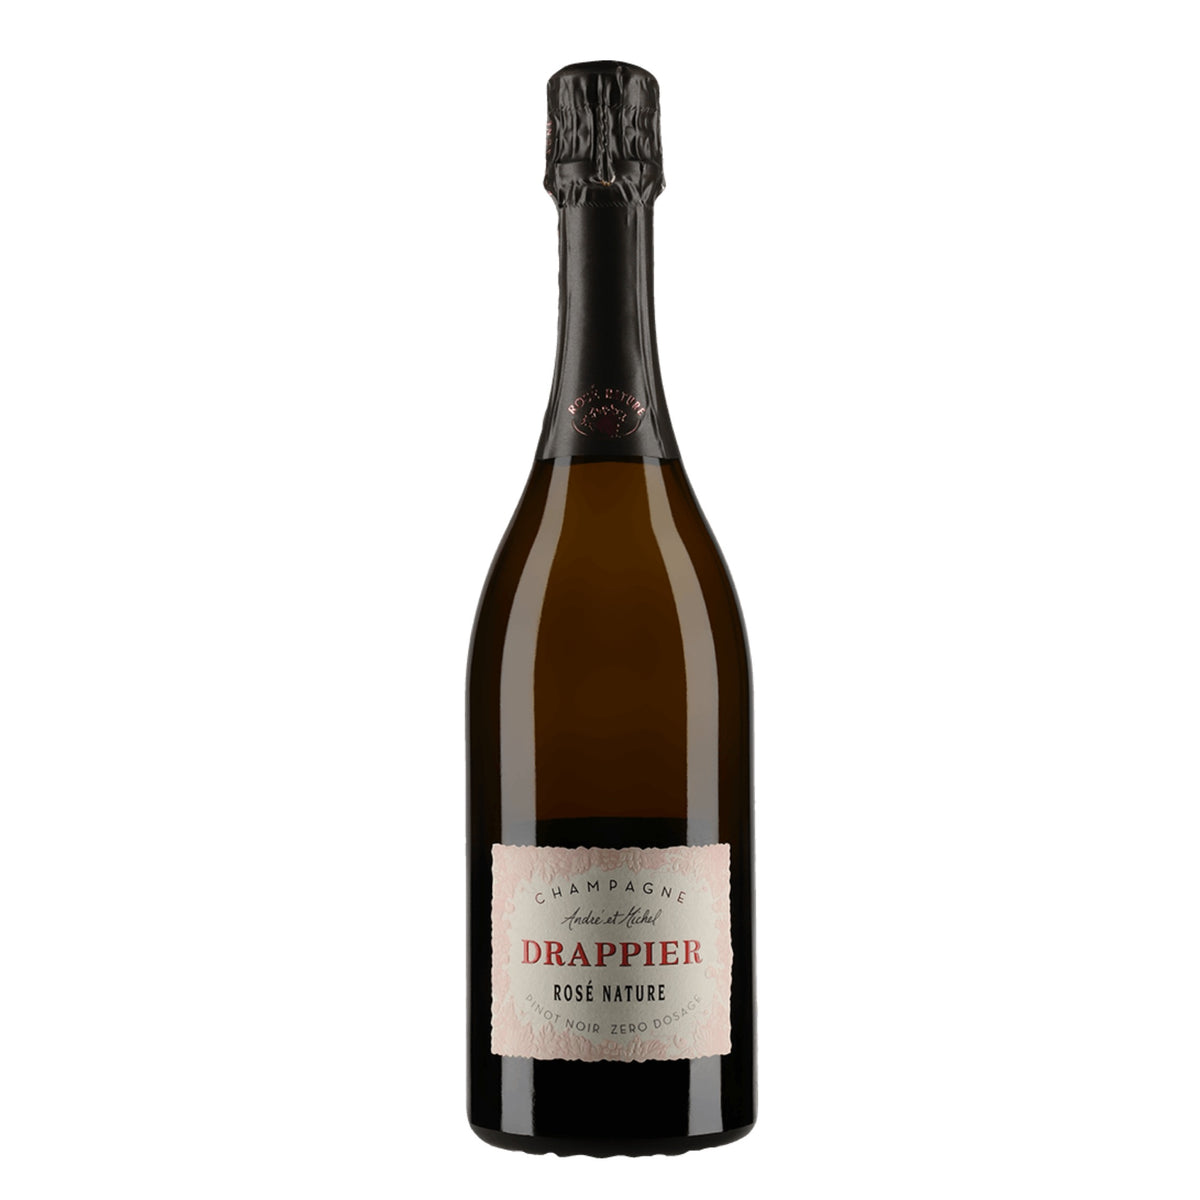 DRAPPIER Champagne Rose Nature NV